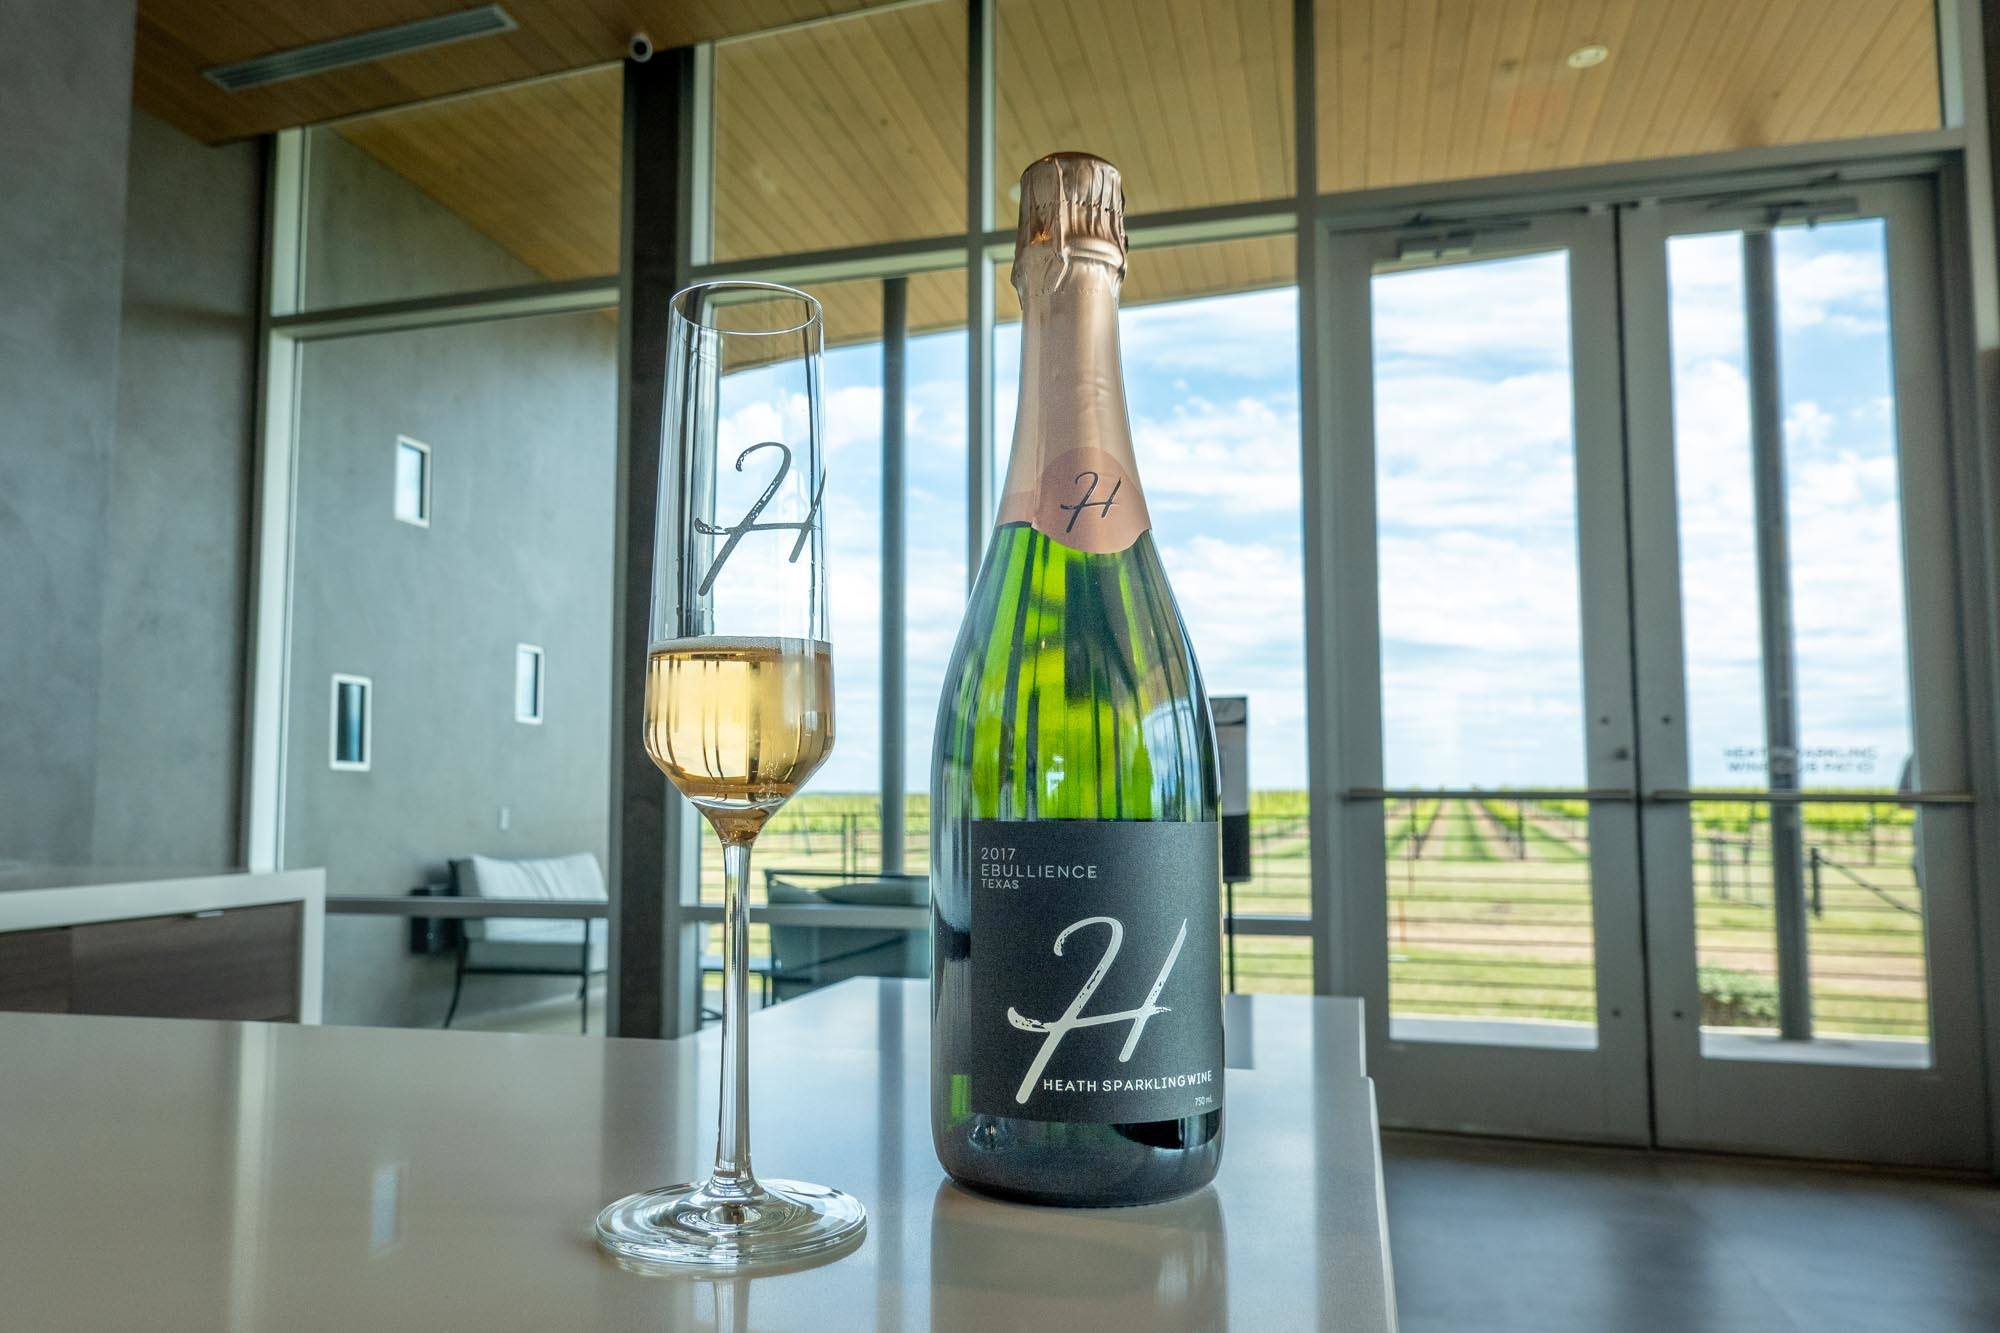 Glass and bottle of sparkling wine on a counter with a view of grapevines outside